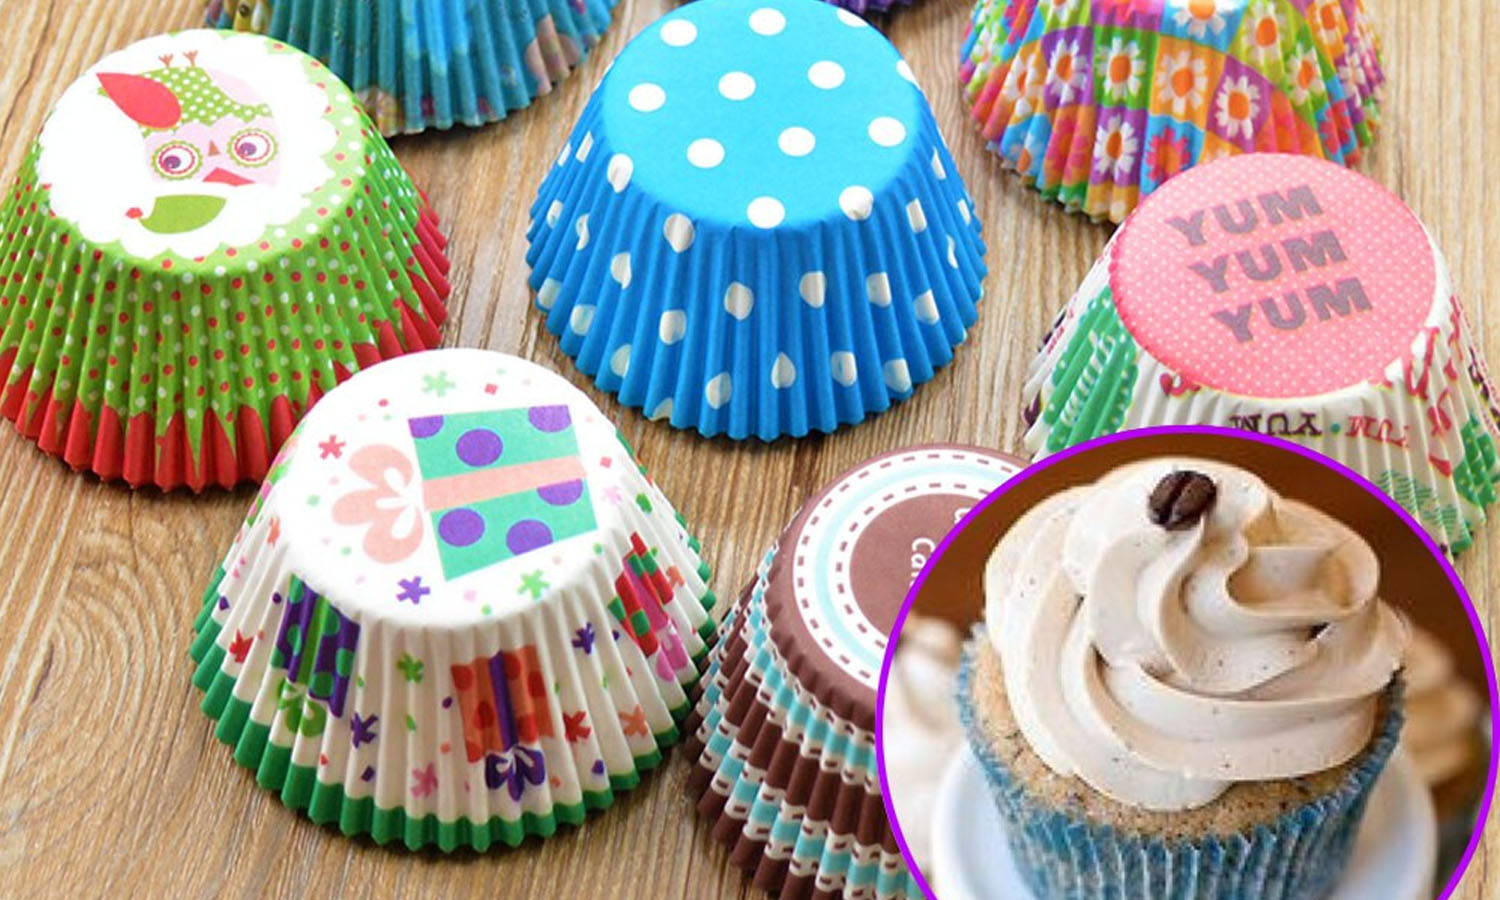 4 ways to Beautify your Cupcakes Business